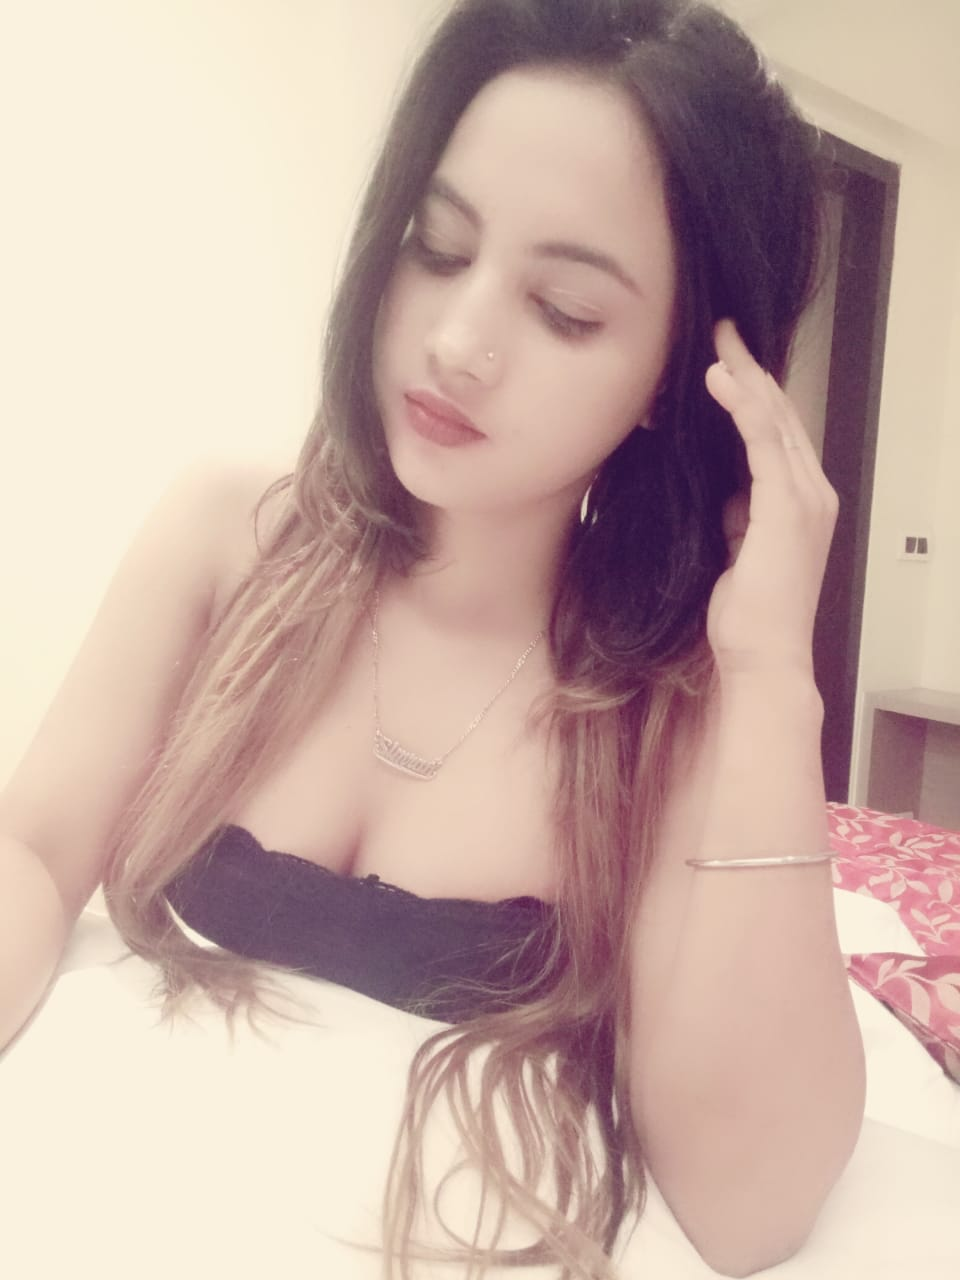 mumbai Independent Escorts In